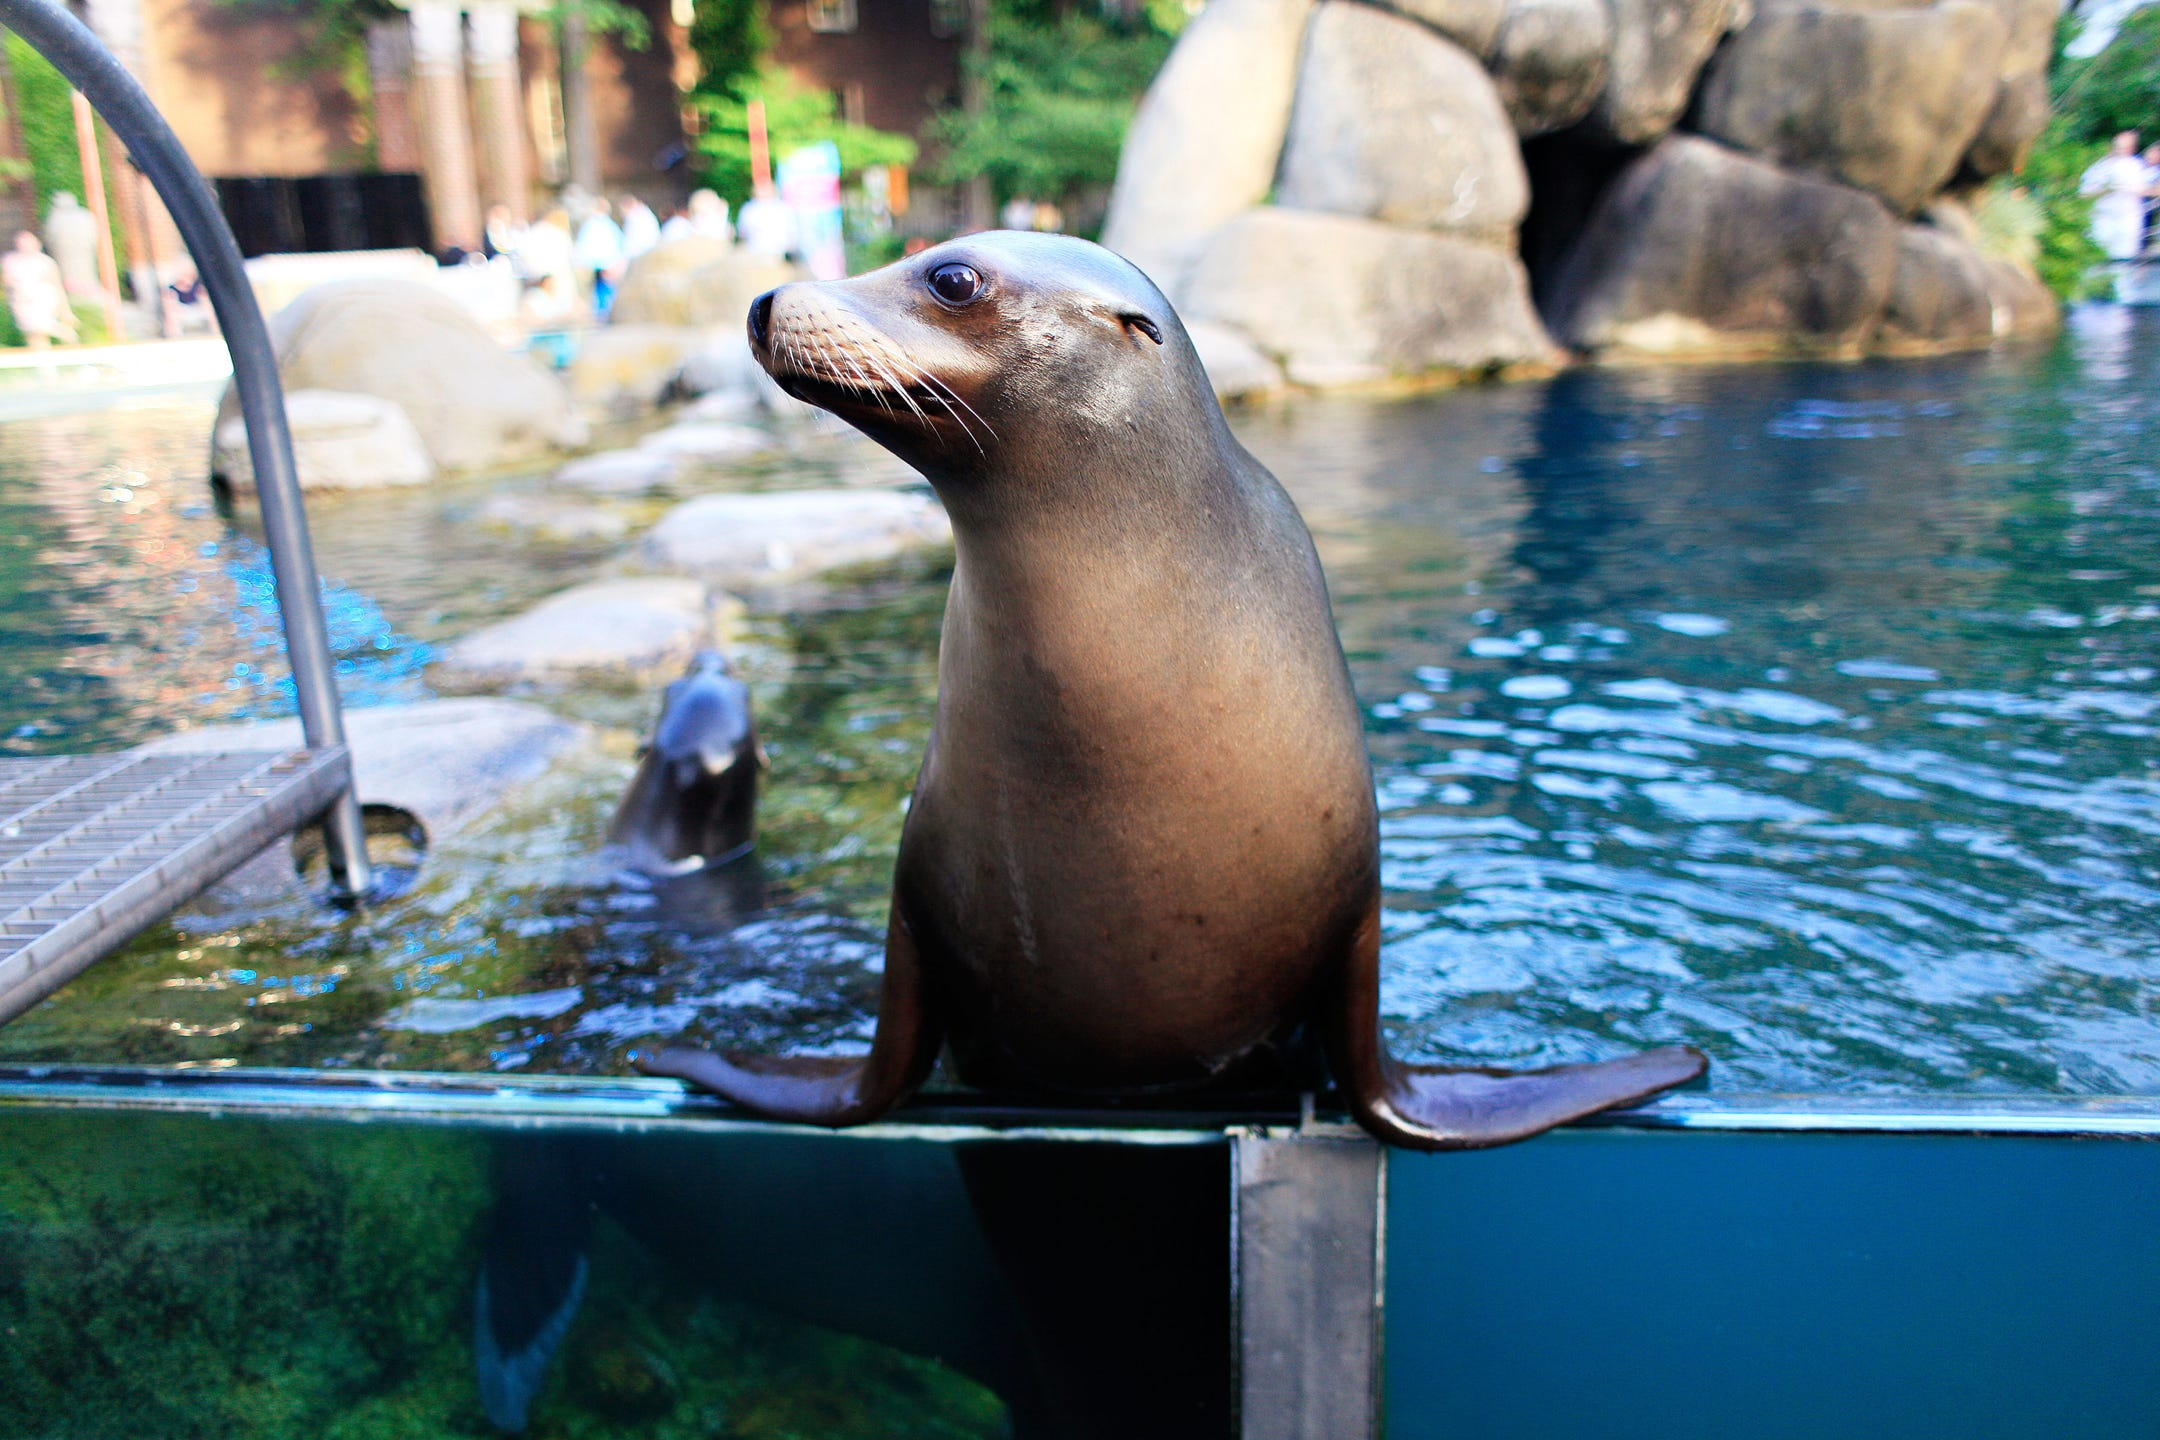 10 places we wouldn't have without the New Deal: Central Park Zoo, San Antonio River Walk